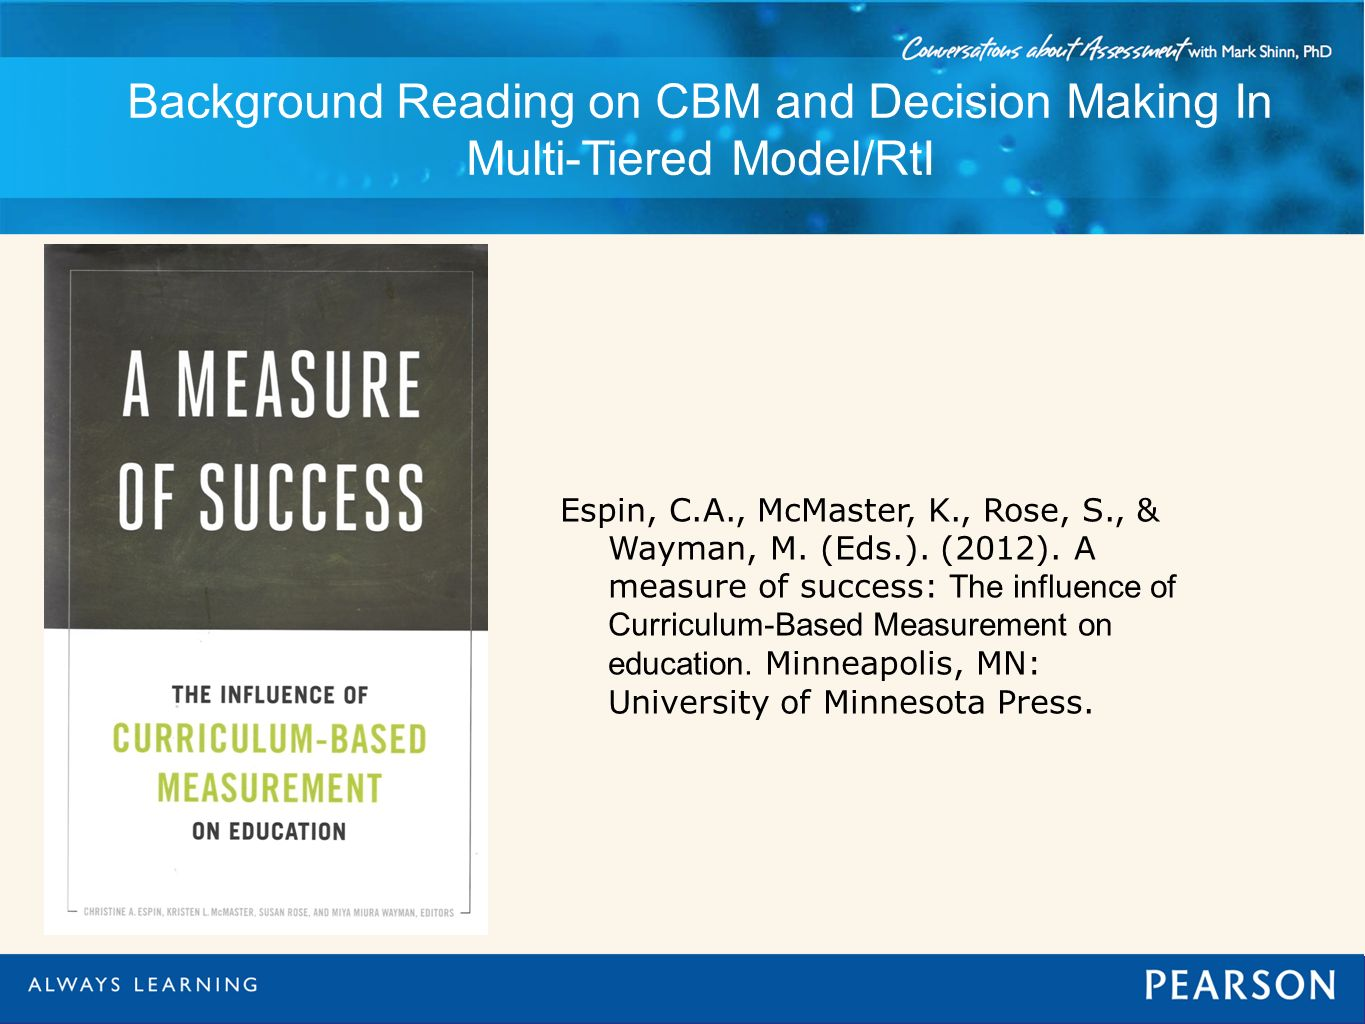 Background Reading on CBM and Decision Making In Multi-Tiered Model/RtI